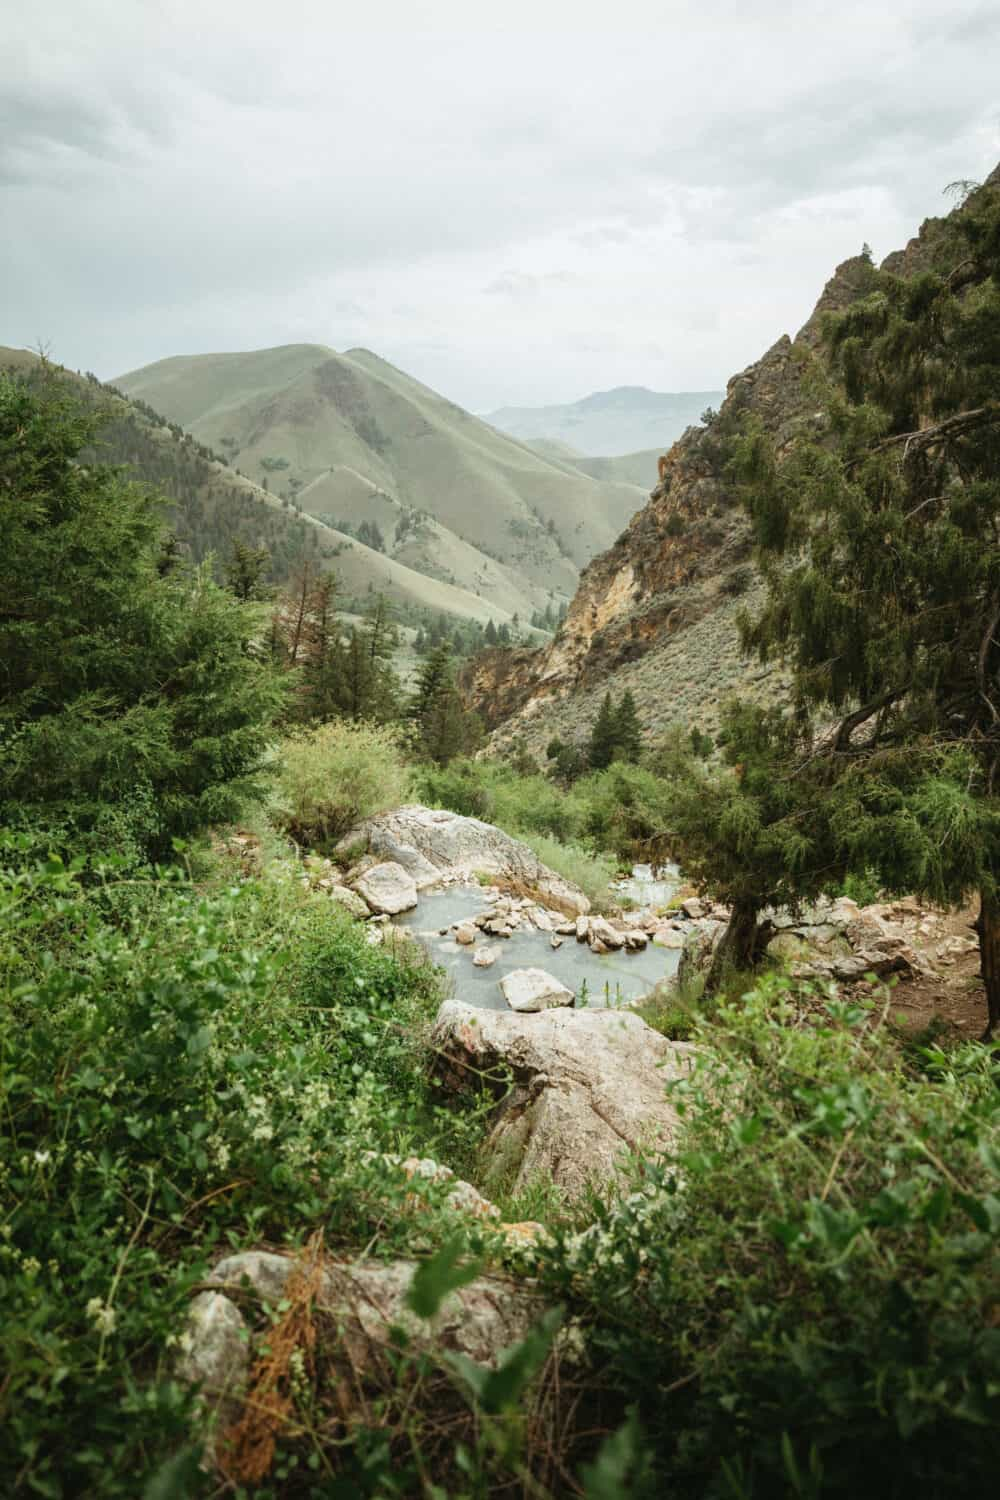 Hot Springs Etiquette - Goldbug Hot Springs in Idaho